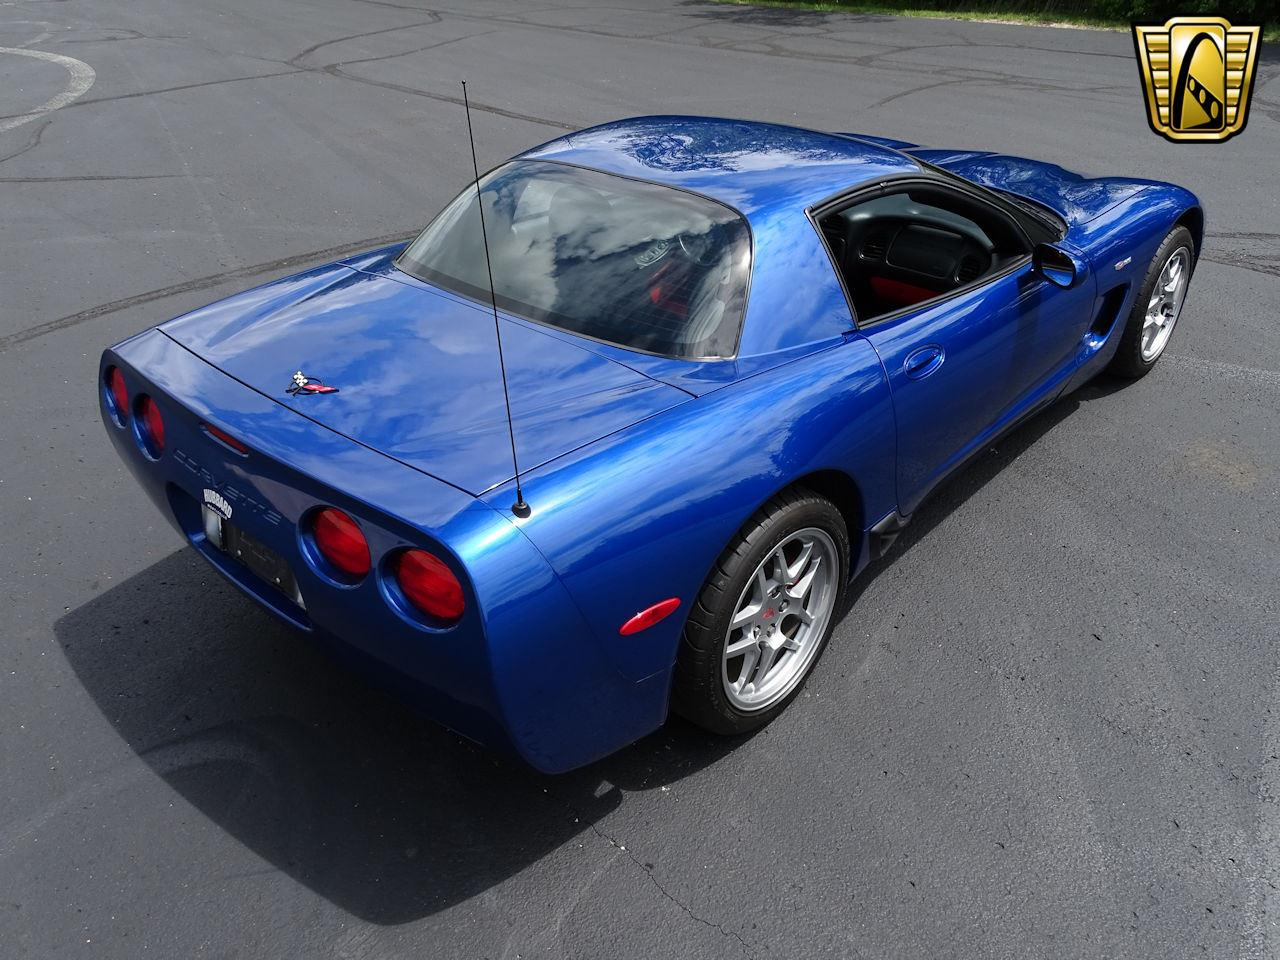 Large Picture of 2002 Corvette located in Indiana - $29,595.00 - LCNV